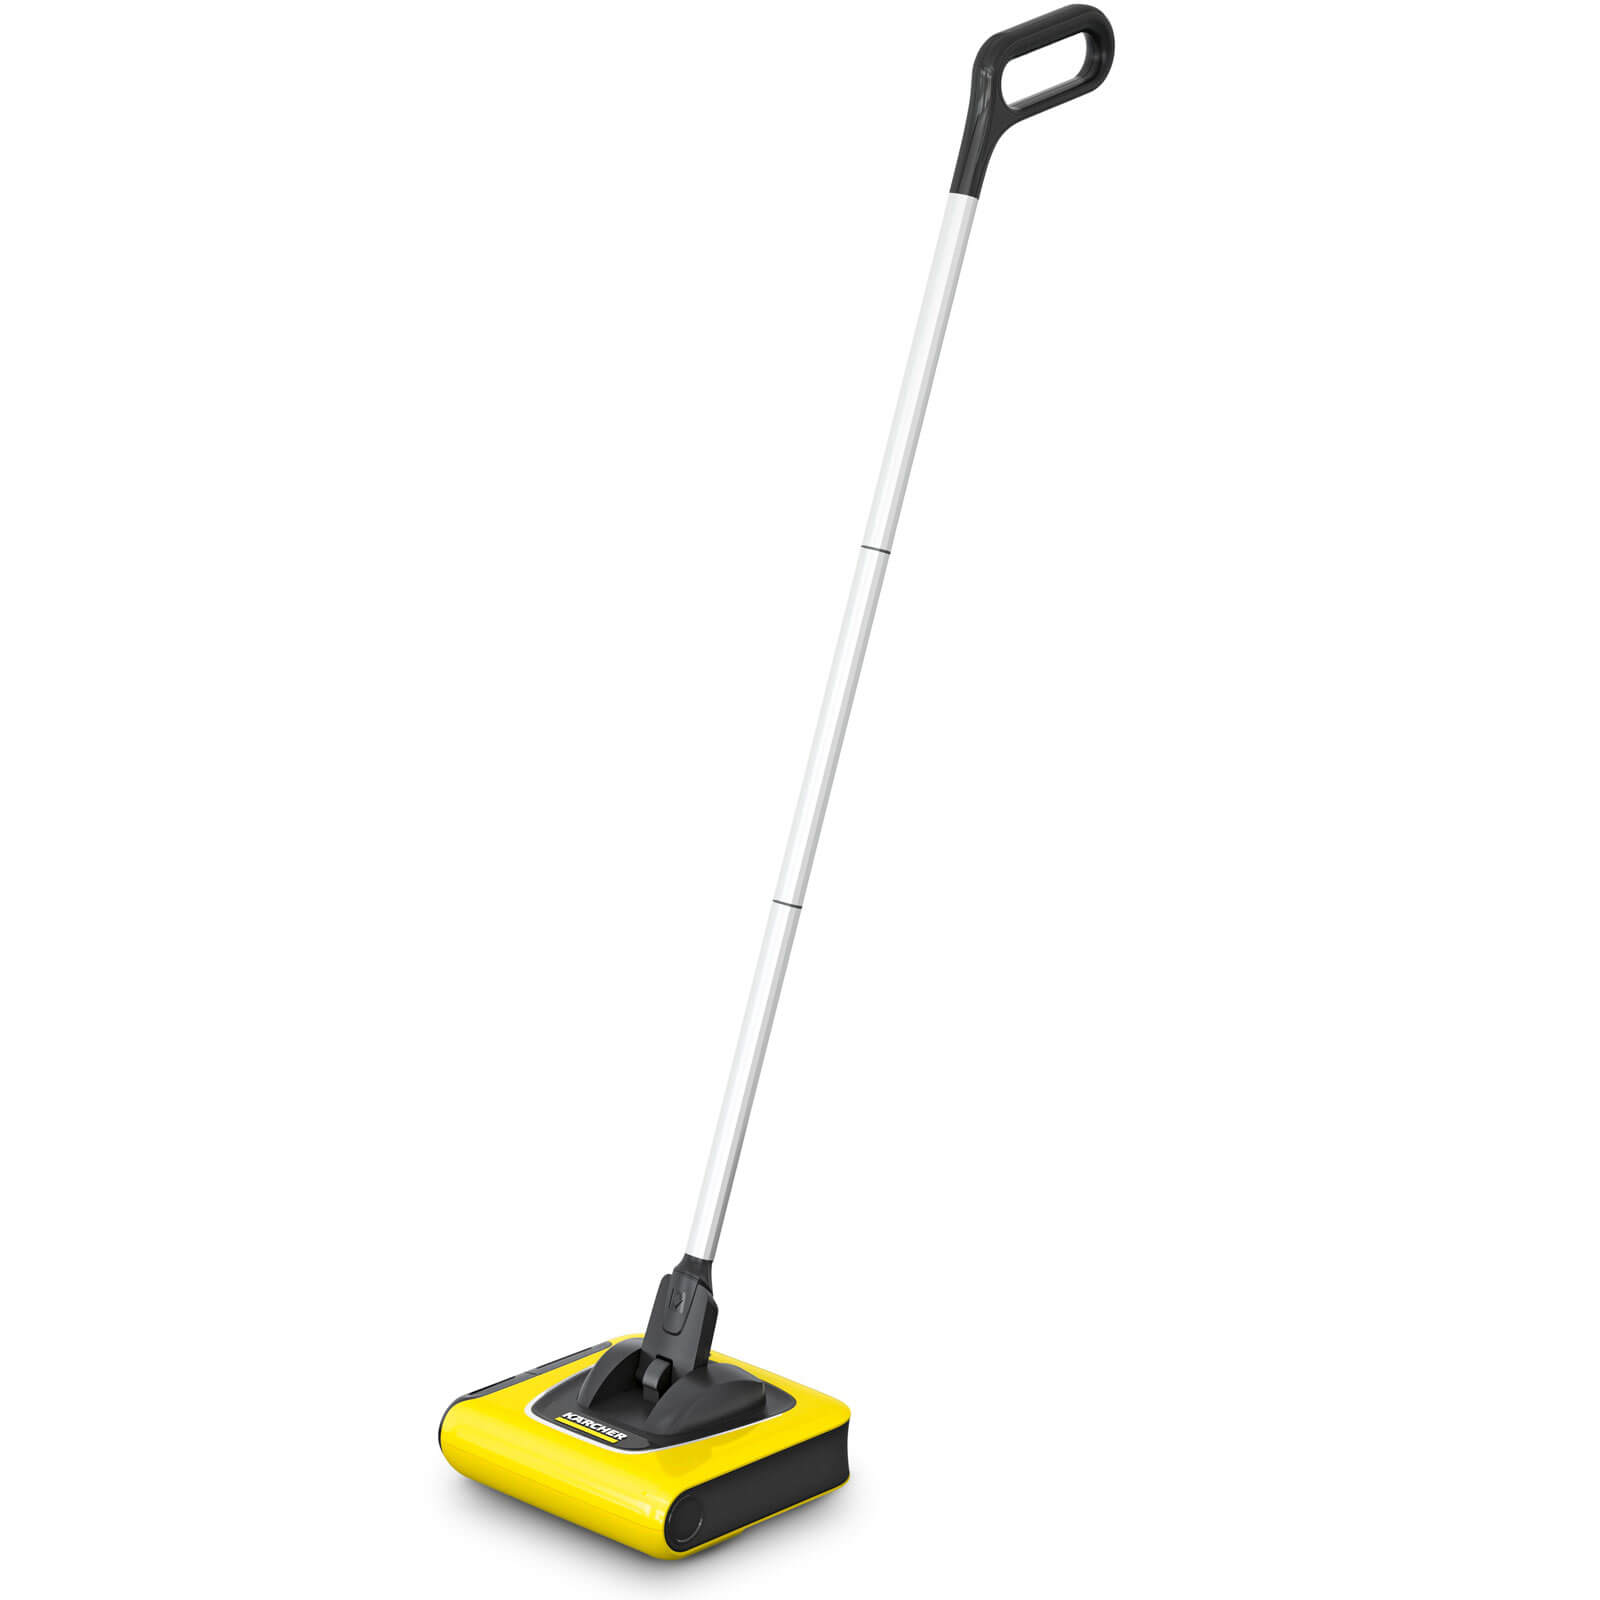 Find Every Shop In The World Selling Floor Street Sweeper